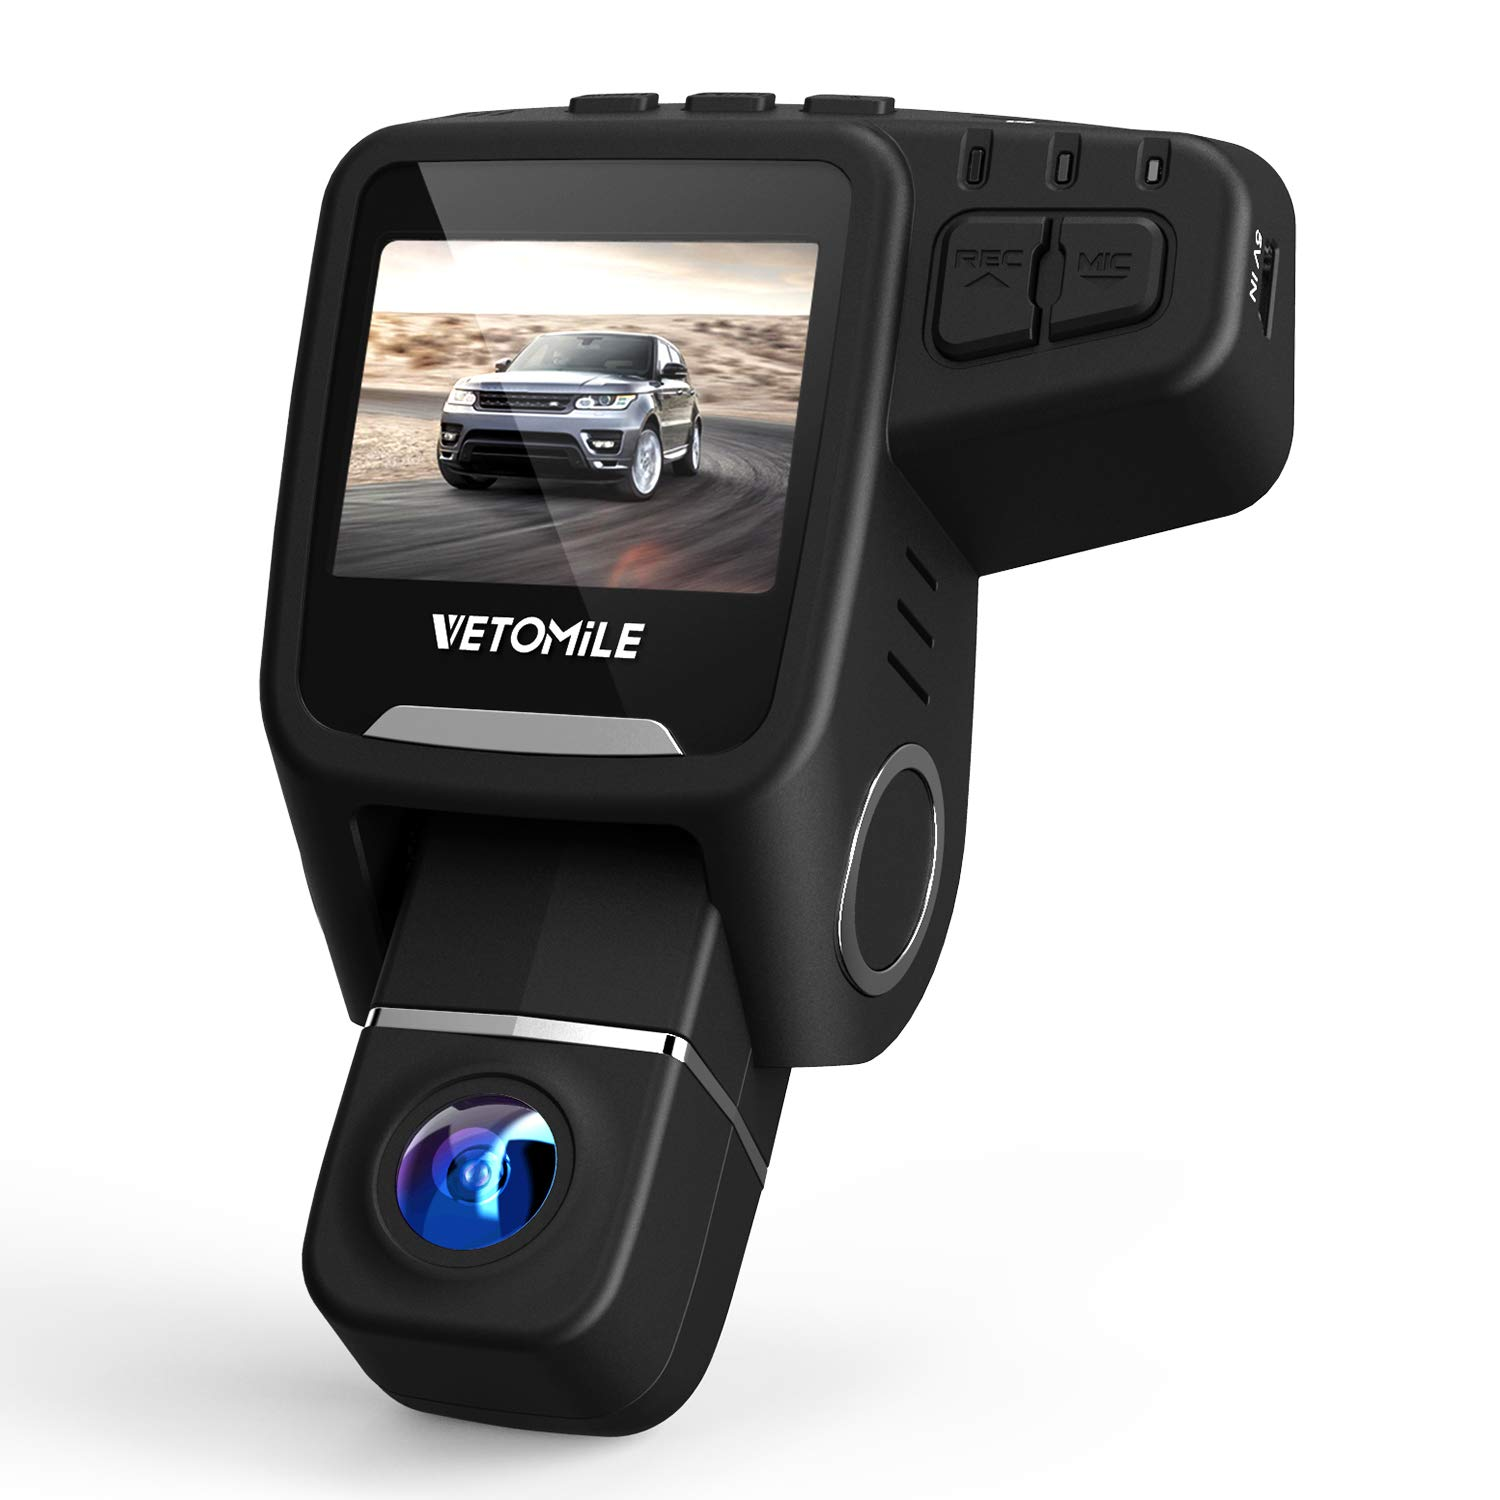 VETOMILE V2 Car Dash Cam 2.5K HD 1440P 30fps Car Dashboard Camera Driving Recorder 170° Wide Angle with Built-in WIFI, GPS, Parking Mode, Super Night Vision, Loop Recording